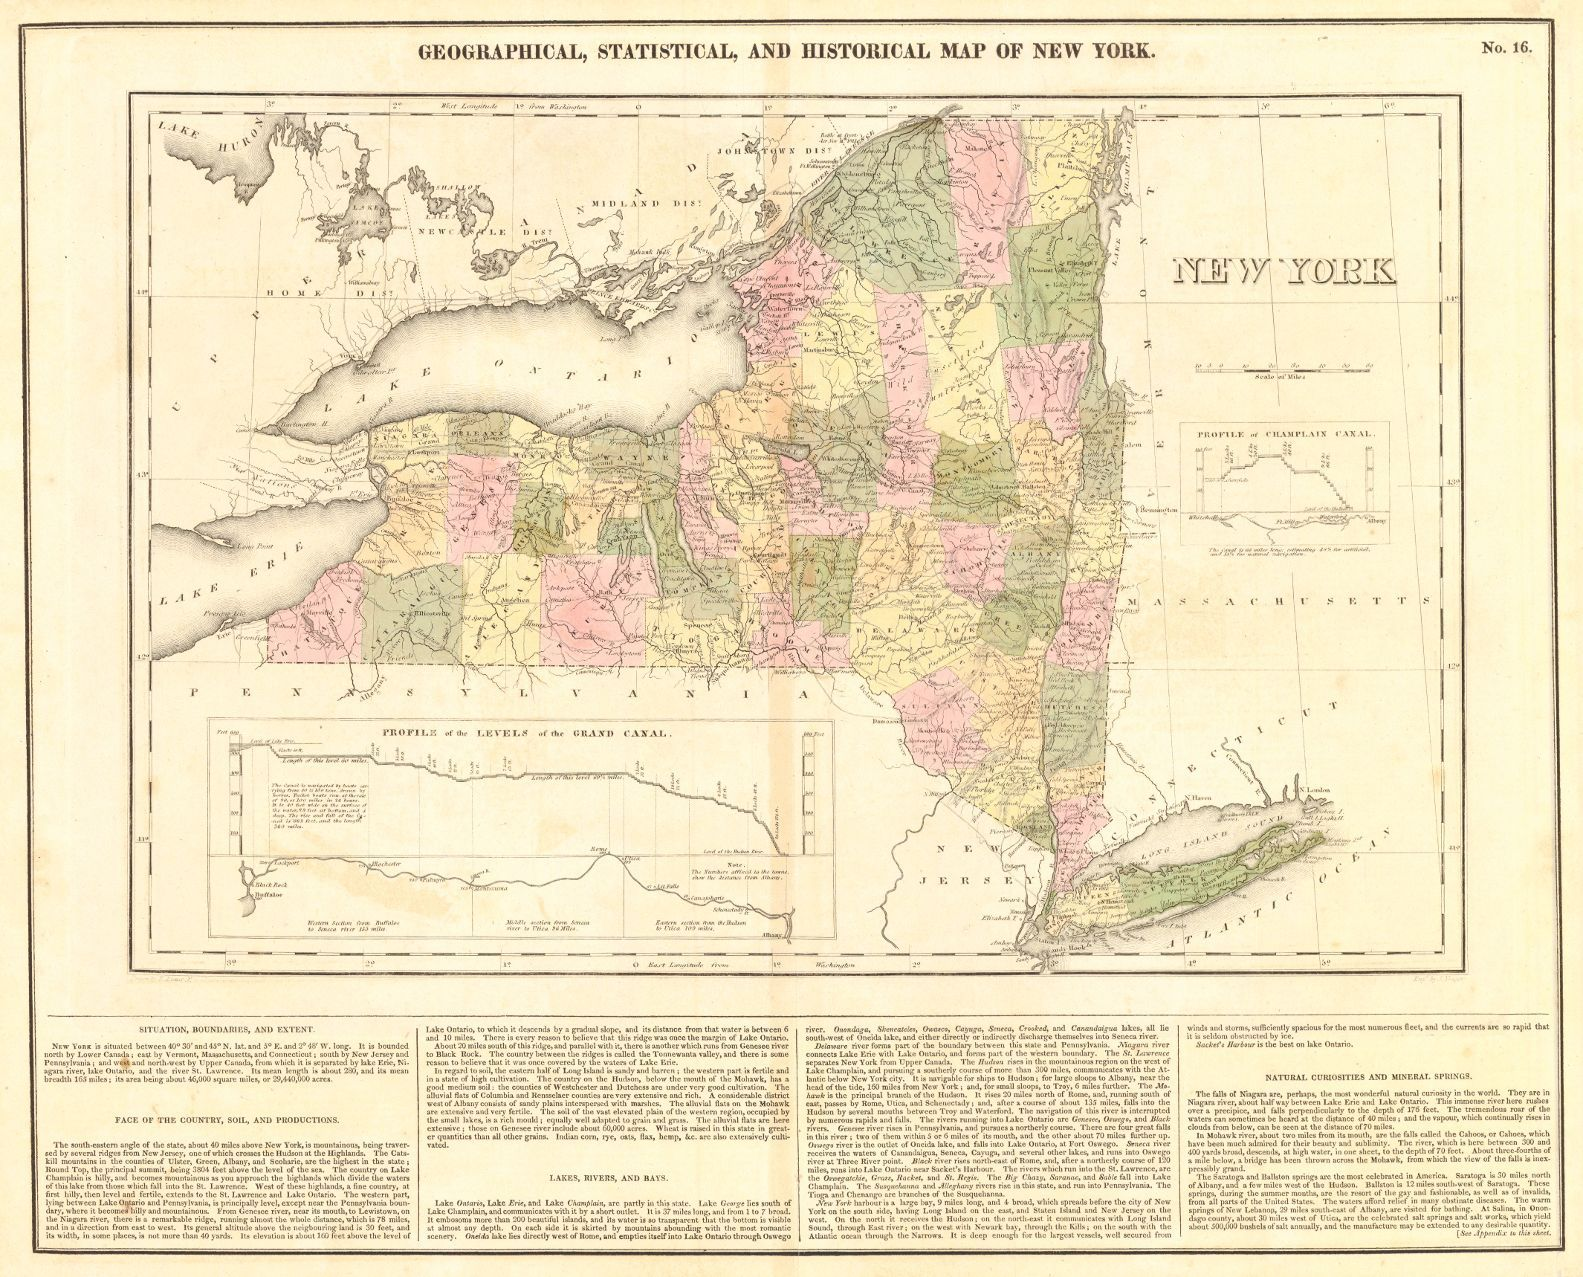 Geographical Map Of New York.Geographical Statistical And Historical Map Of New York Carey